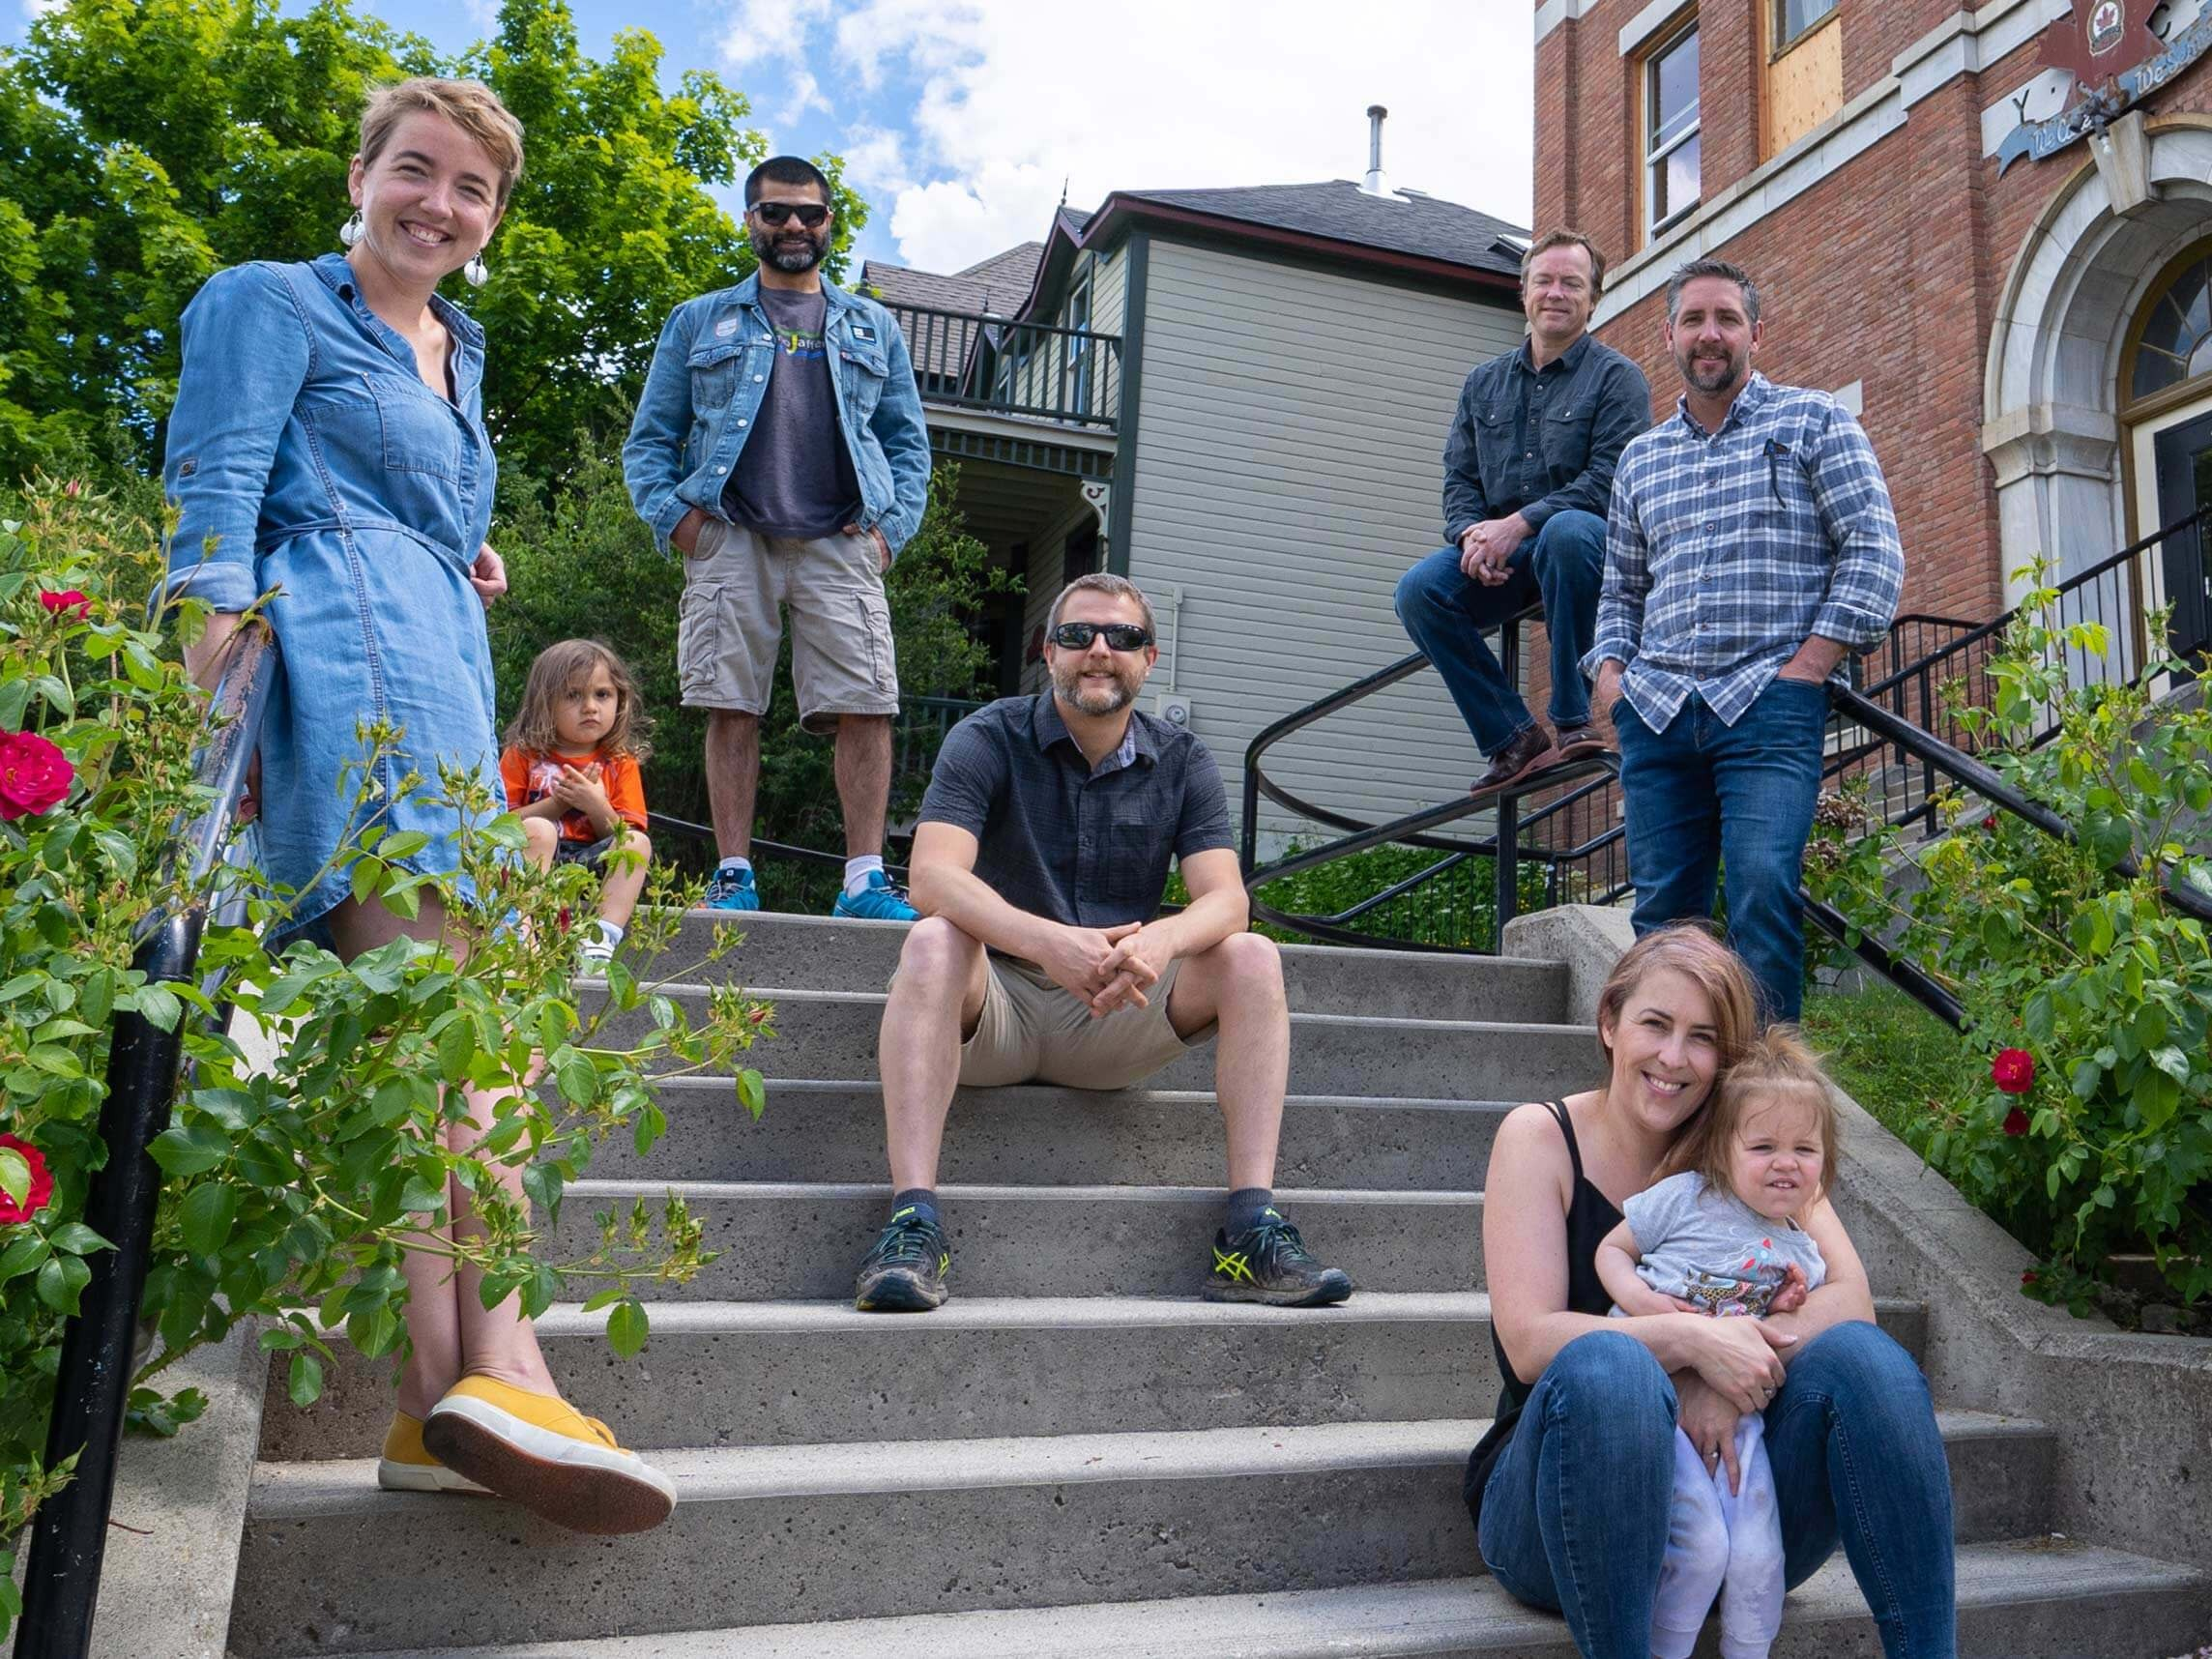 The Traction on Demand team sitting on the steps of their office in Nelson, BC.